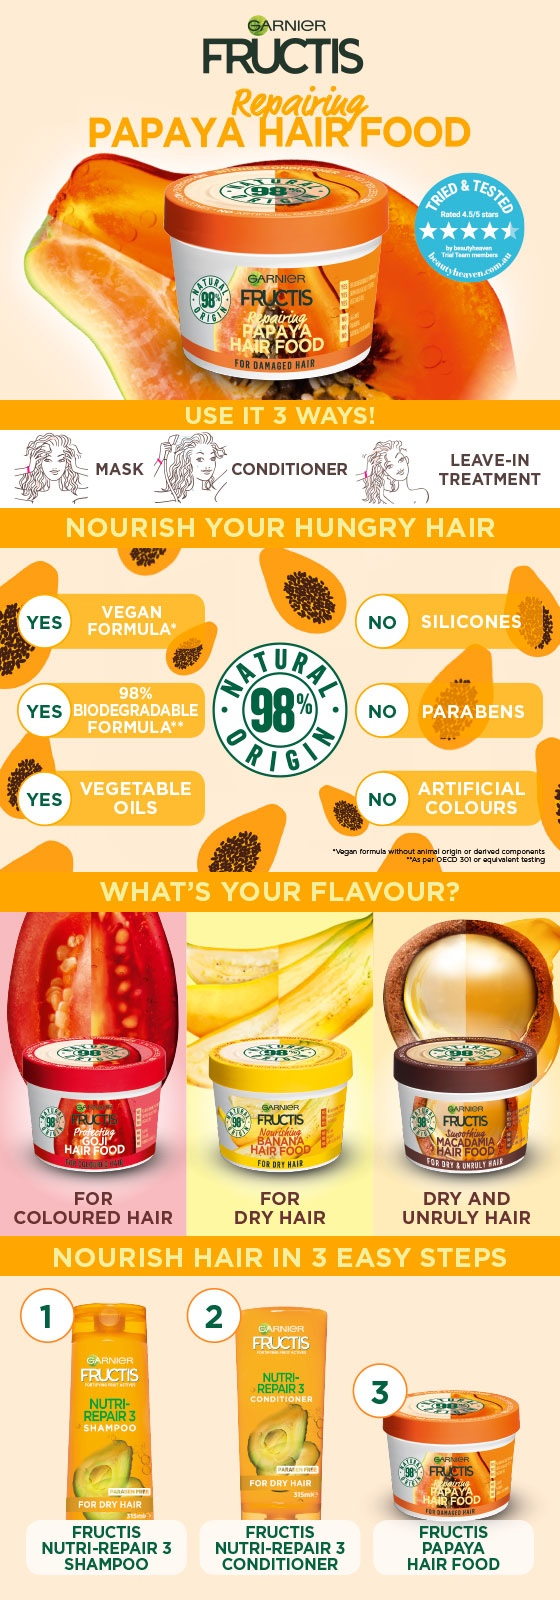 Garnier Fructis Repairing Papaya Hair Food